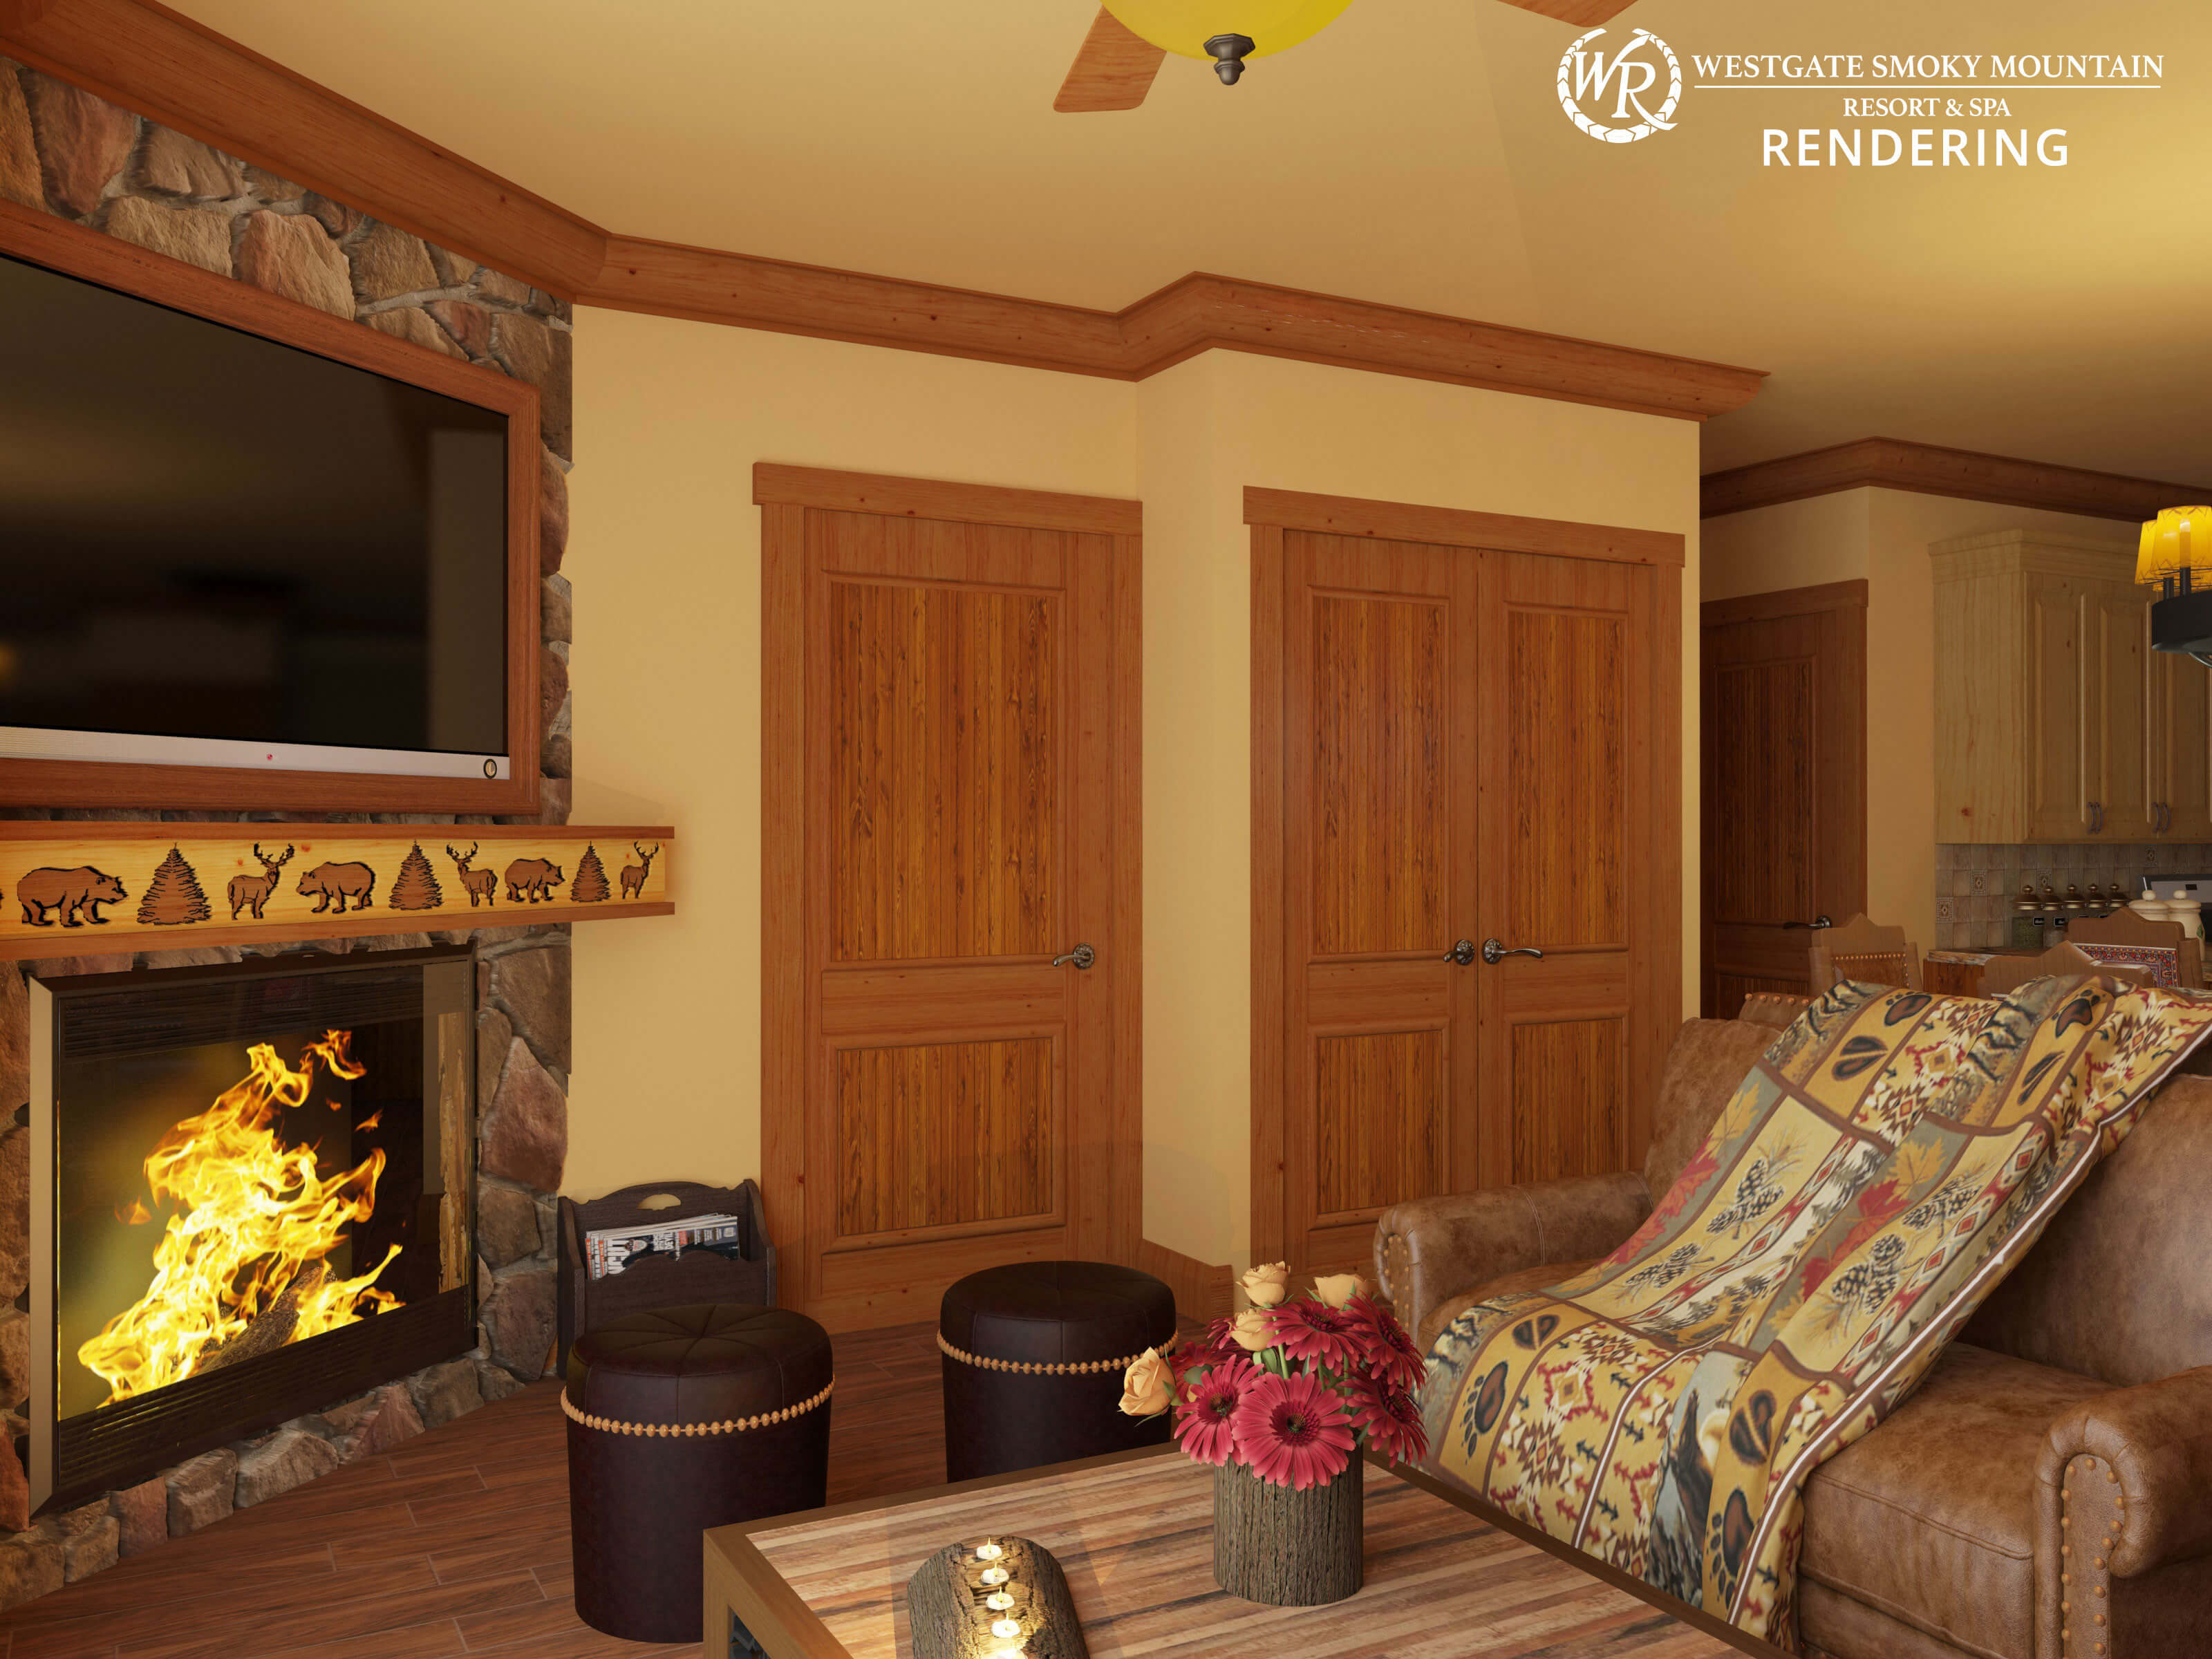 Rendering of Smoky Mountain resort timeshare in Gatlinburg TN | Westgate Smoky Mountain Resort & Spa | Westgate Resorts